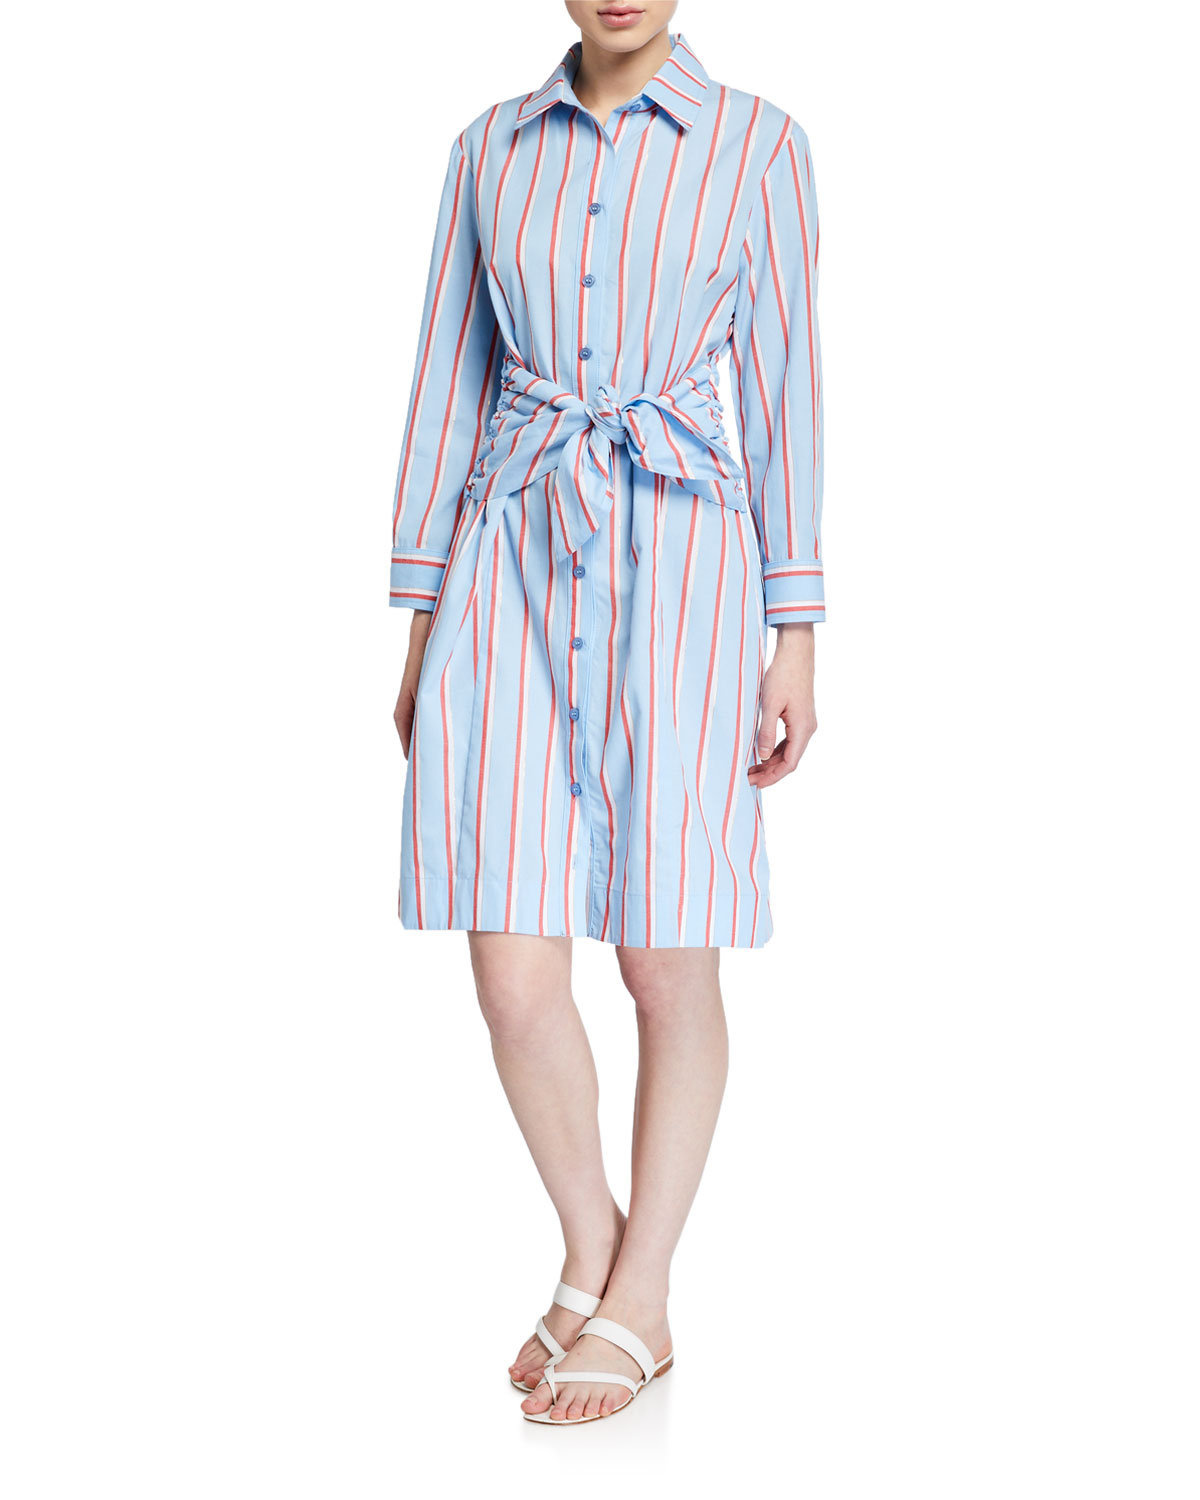 Finley Ellis Sparkle Stripe Shirtdress